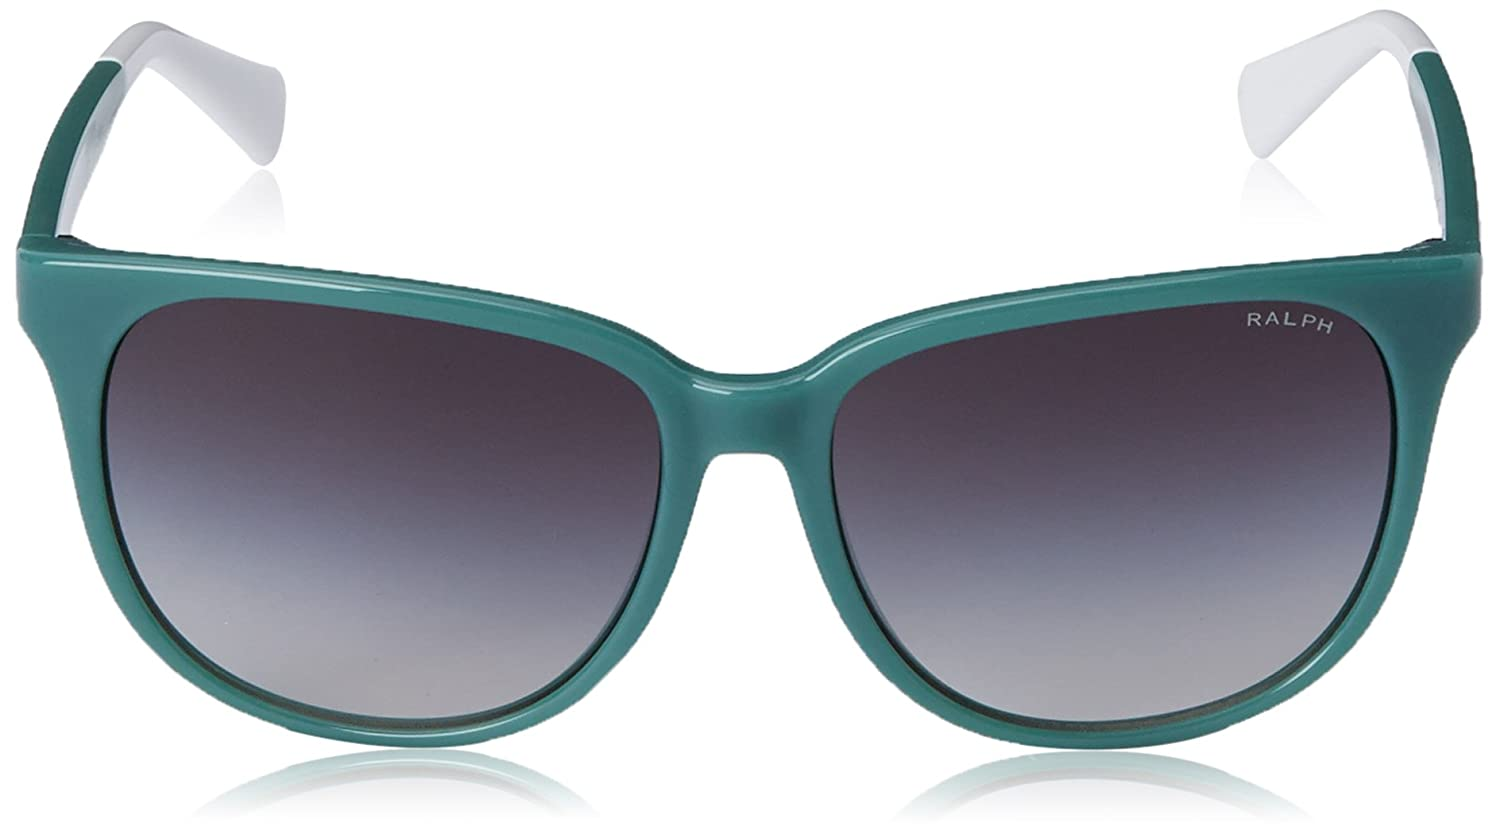 Ralph by Ralph Lauren Women's 0RA5194 Round Sunglasses, Turquoise, Grey &  Gradient Turquoise, 57 mm: Amazon.in: Clothing & Accessories